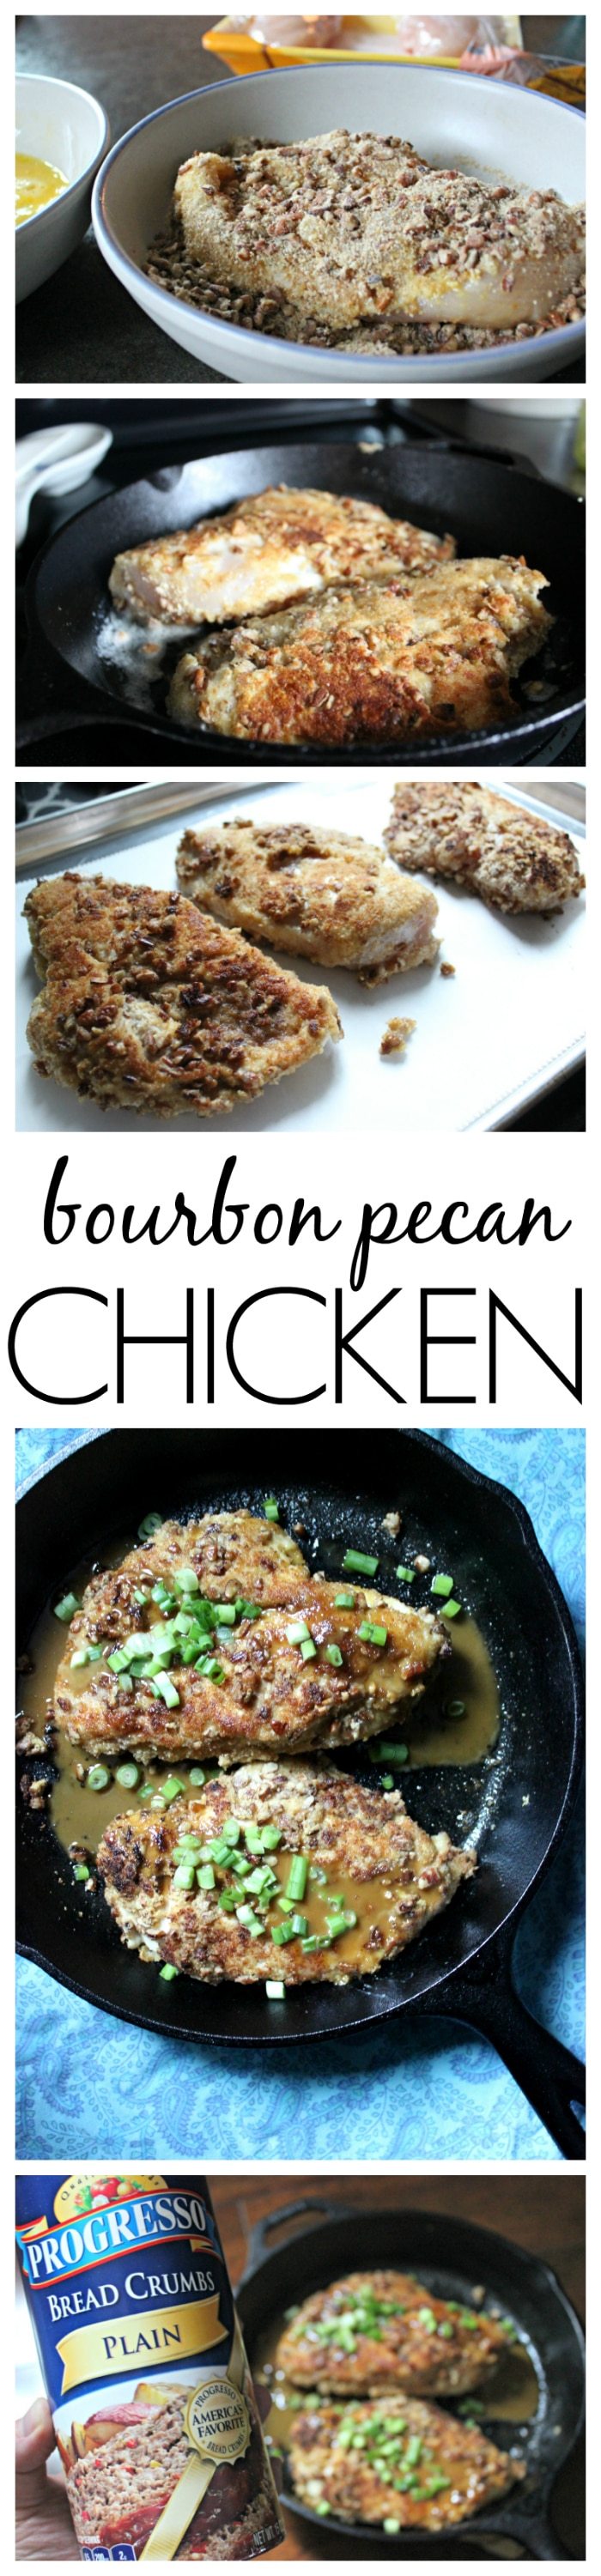 Boubon chicken pecan recipe with Progresso bread crumbs